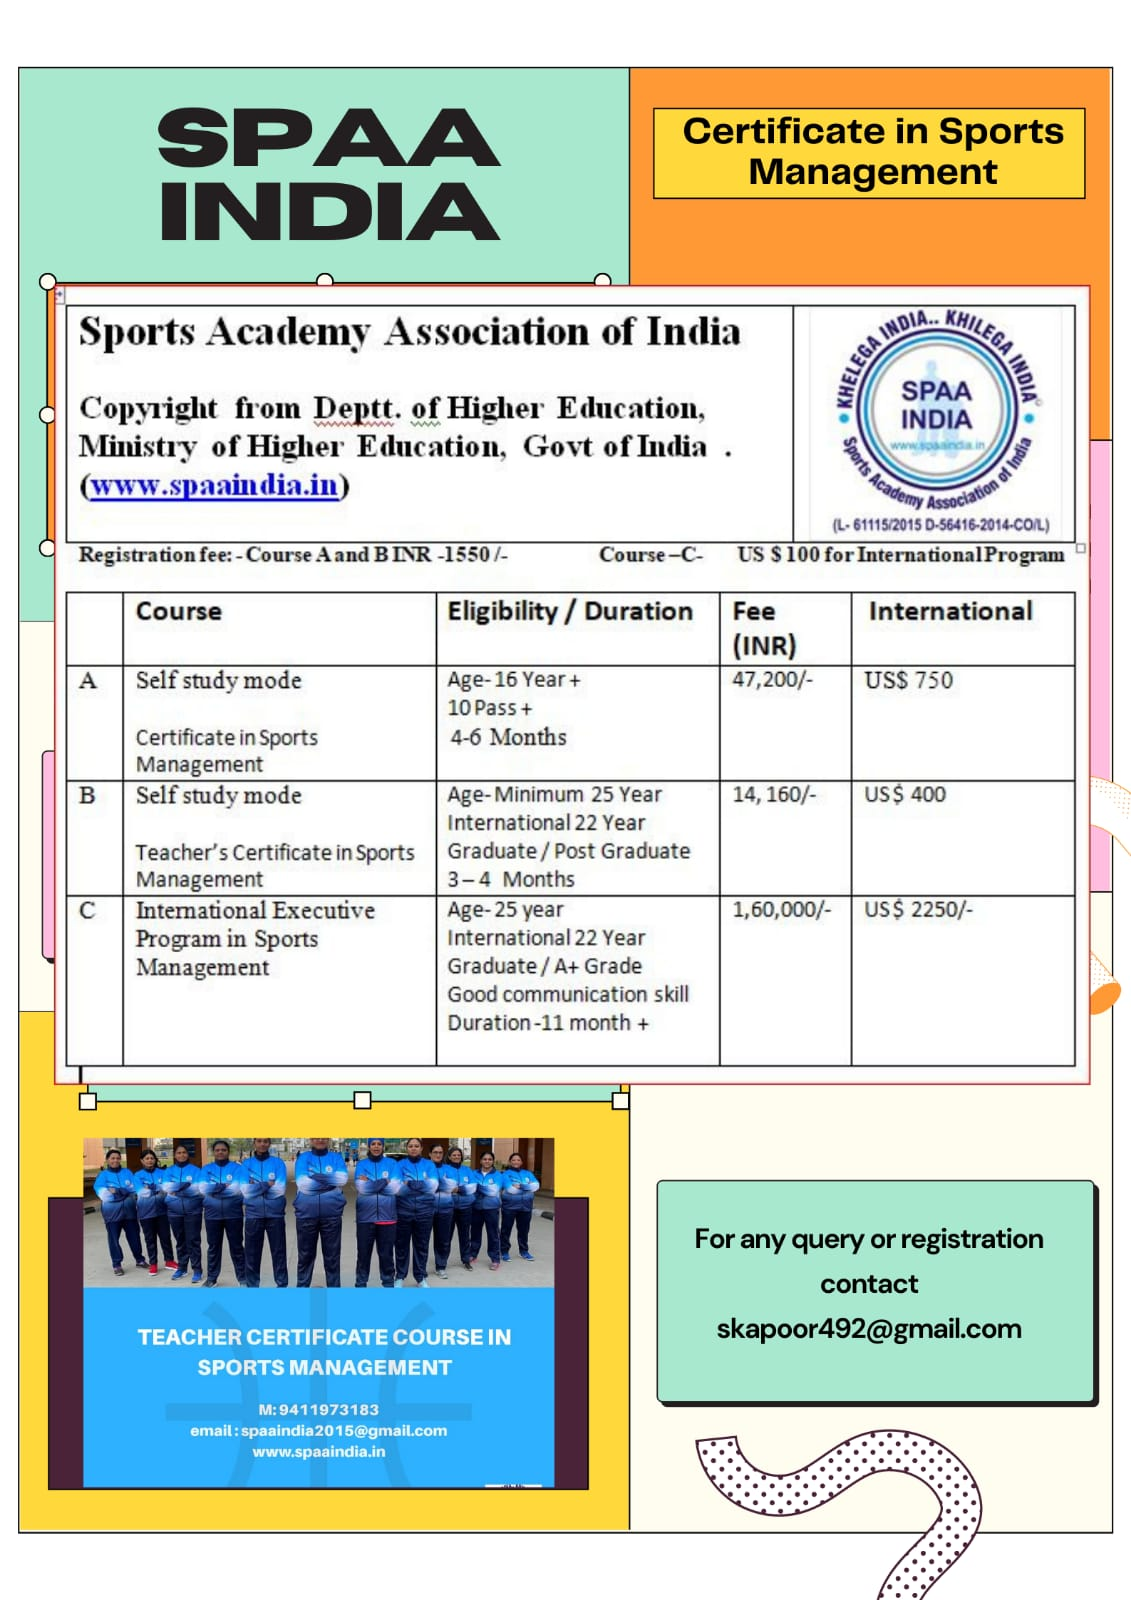 Sports Academy Association of India (SPAA): Architect For Developing Sports Education In India